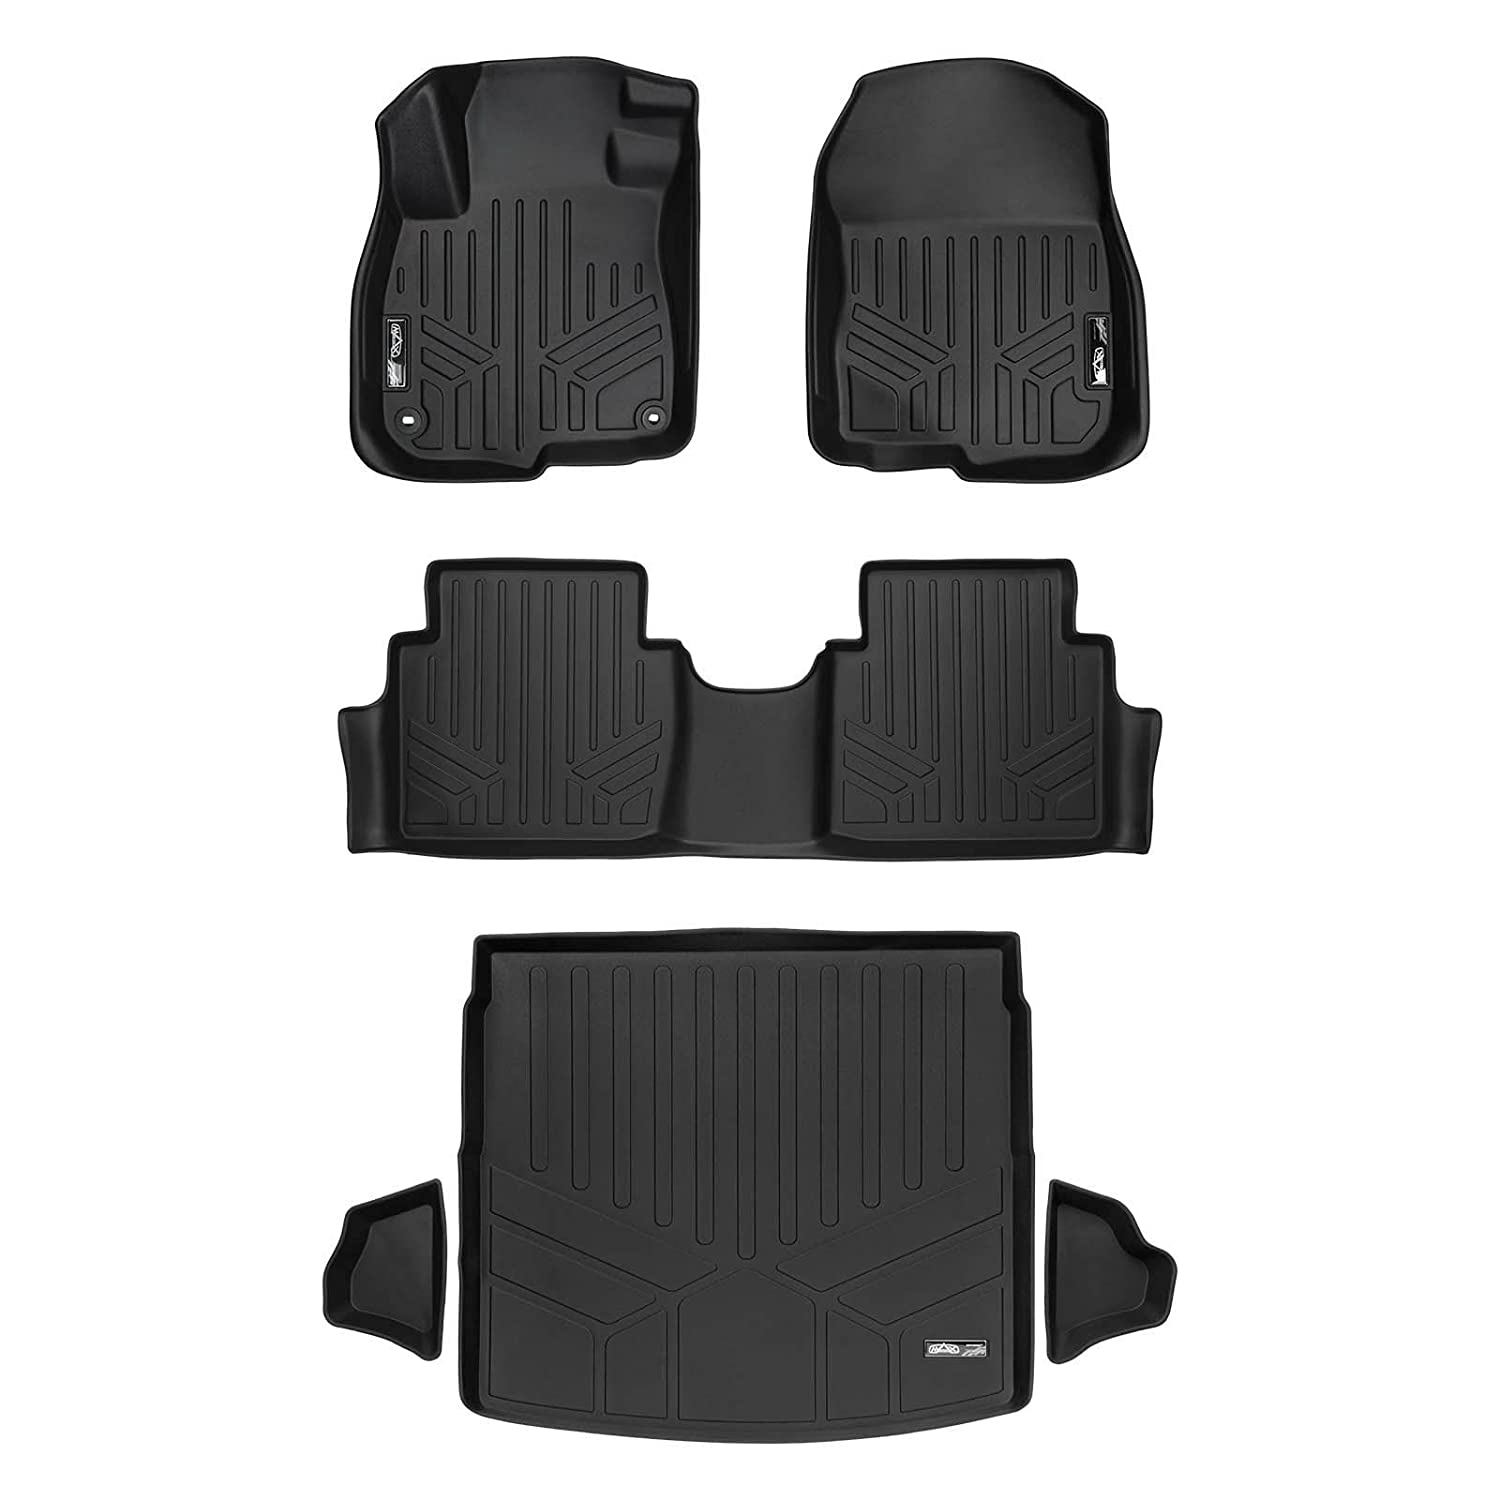 Set Black for 2017-2018 Honda CR-V SMARTLINER Floor Mats and Cargo Liner Factory Upper Deck Position